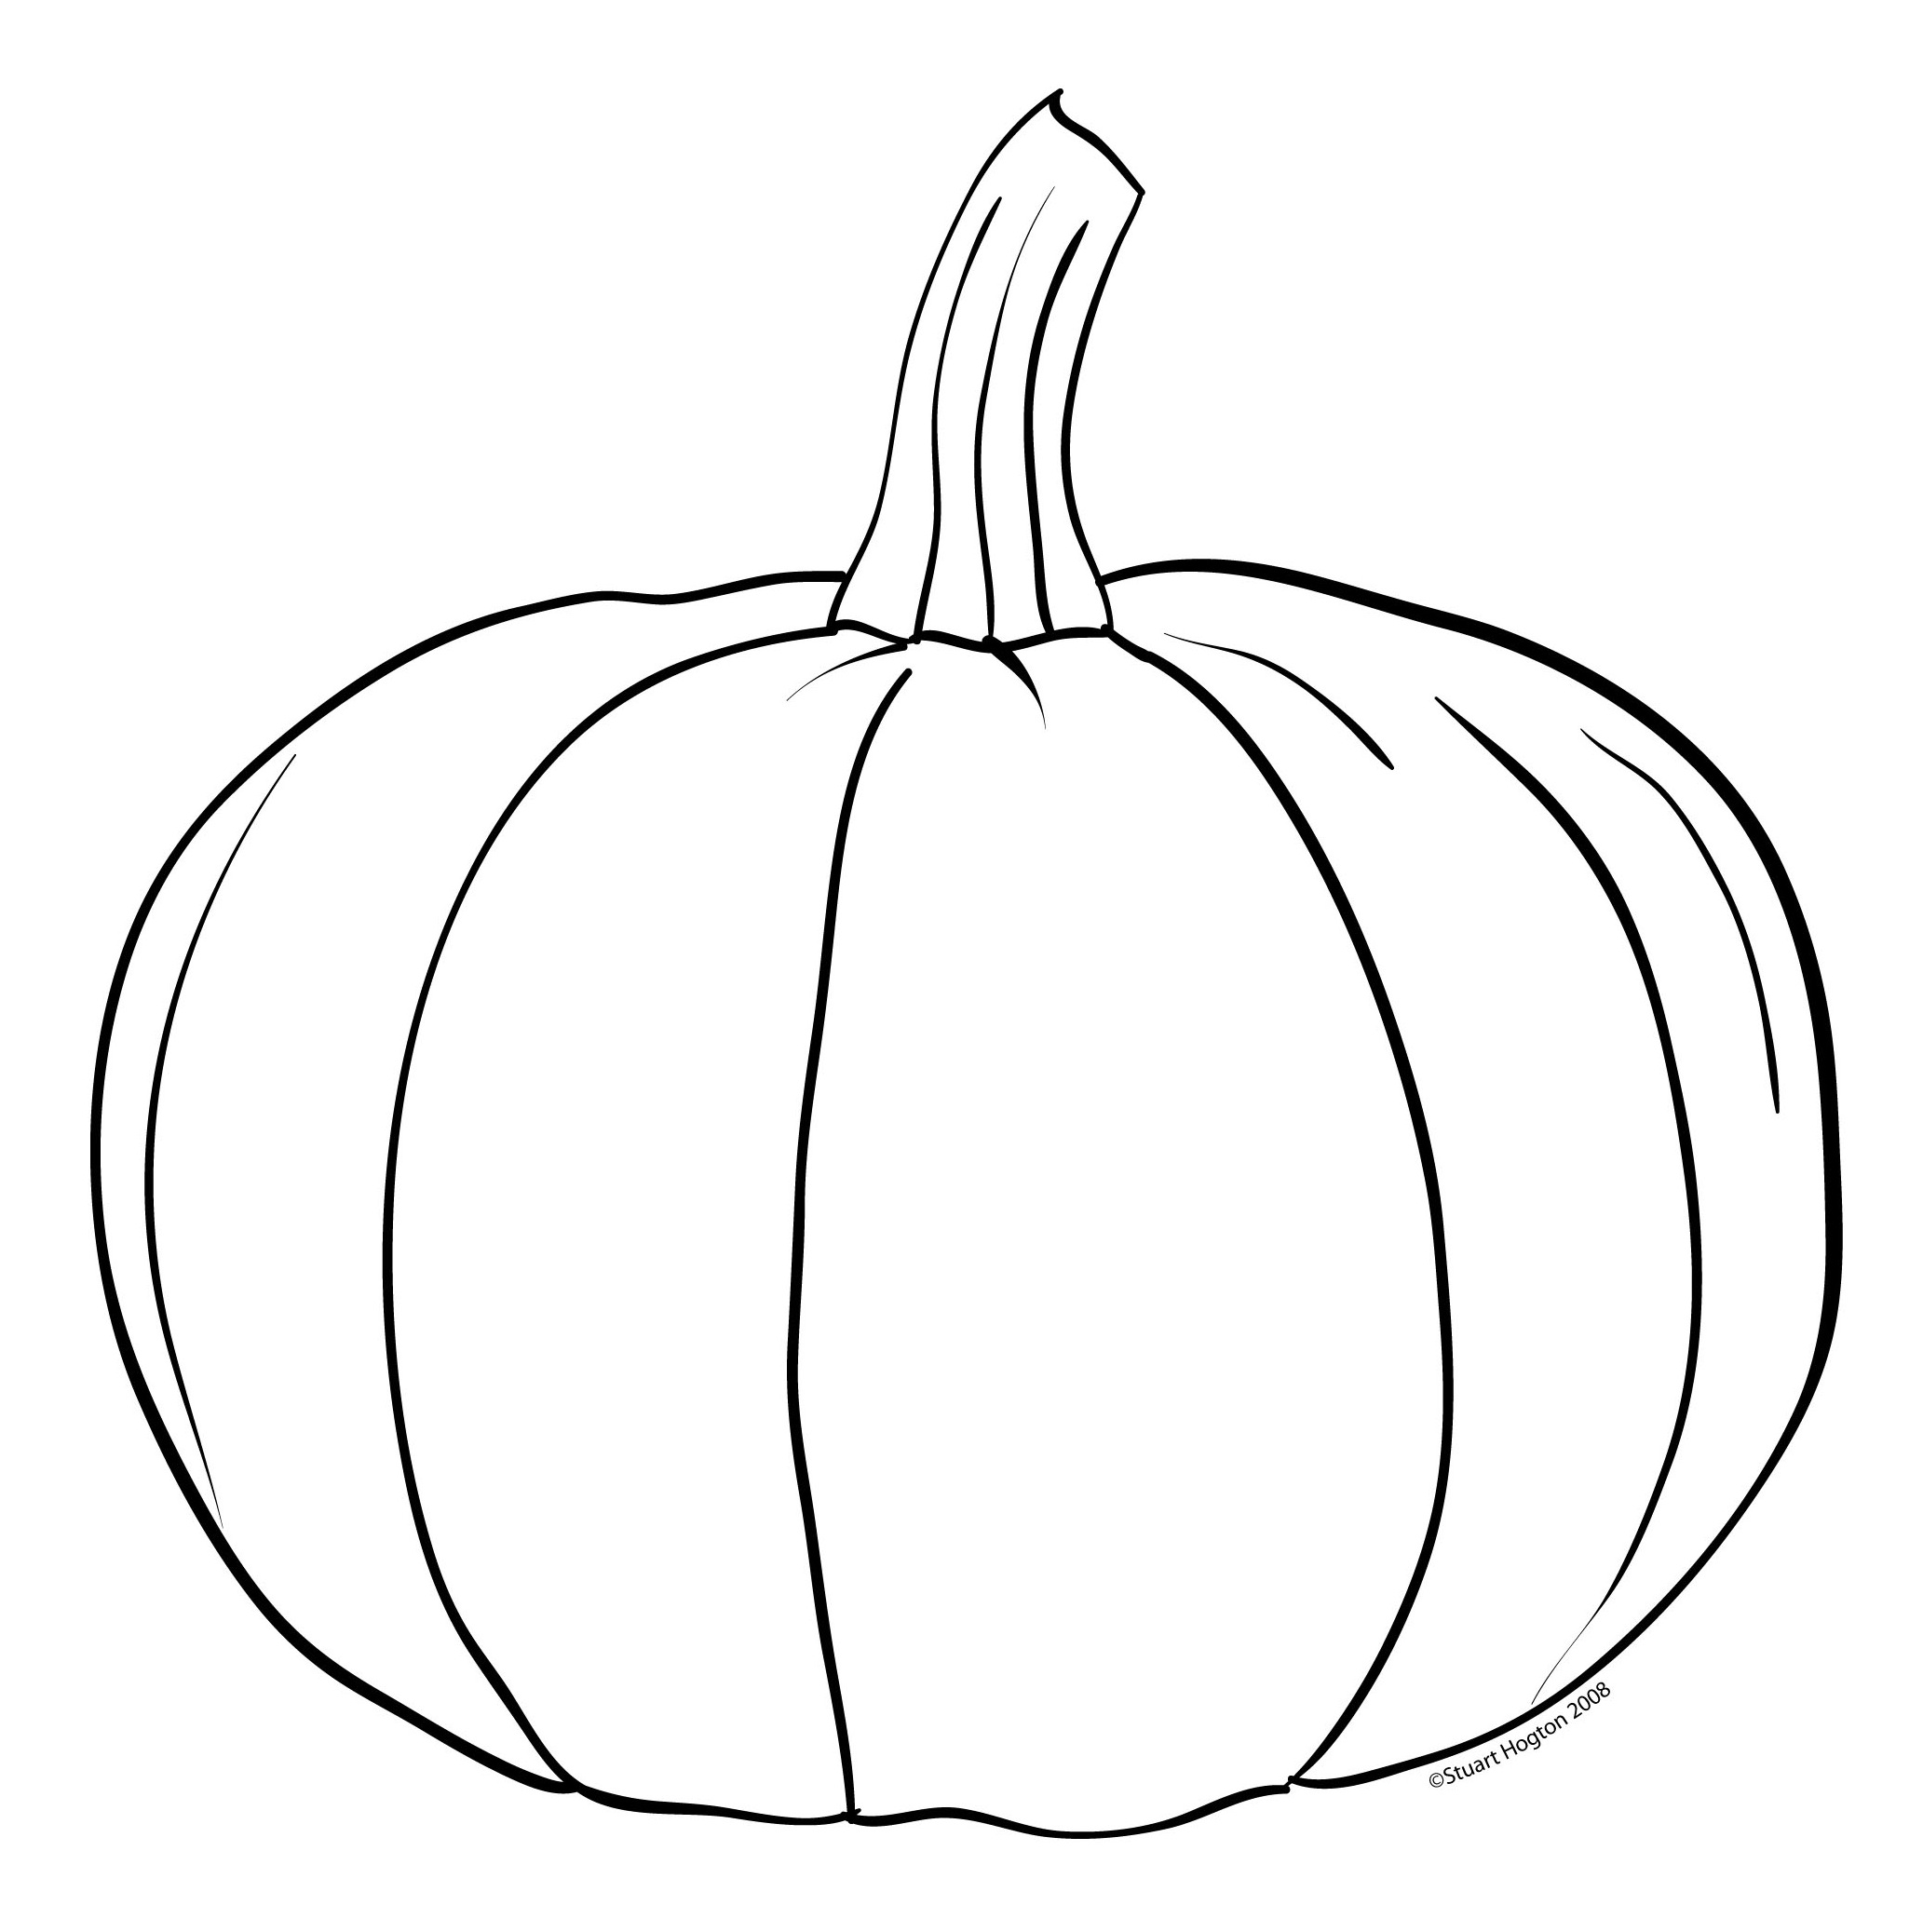 Pumpkin Coloring Template Coloring Pages For Adults Coloring Pumpkin